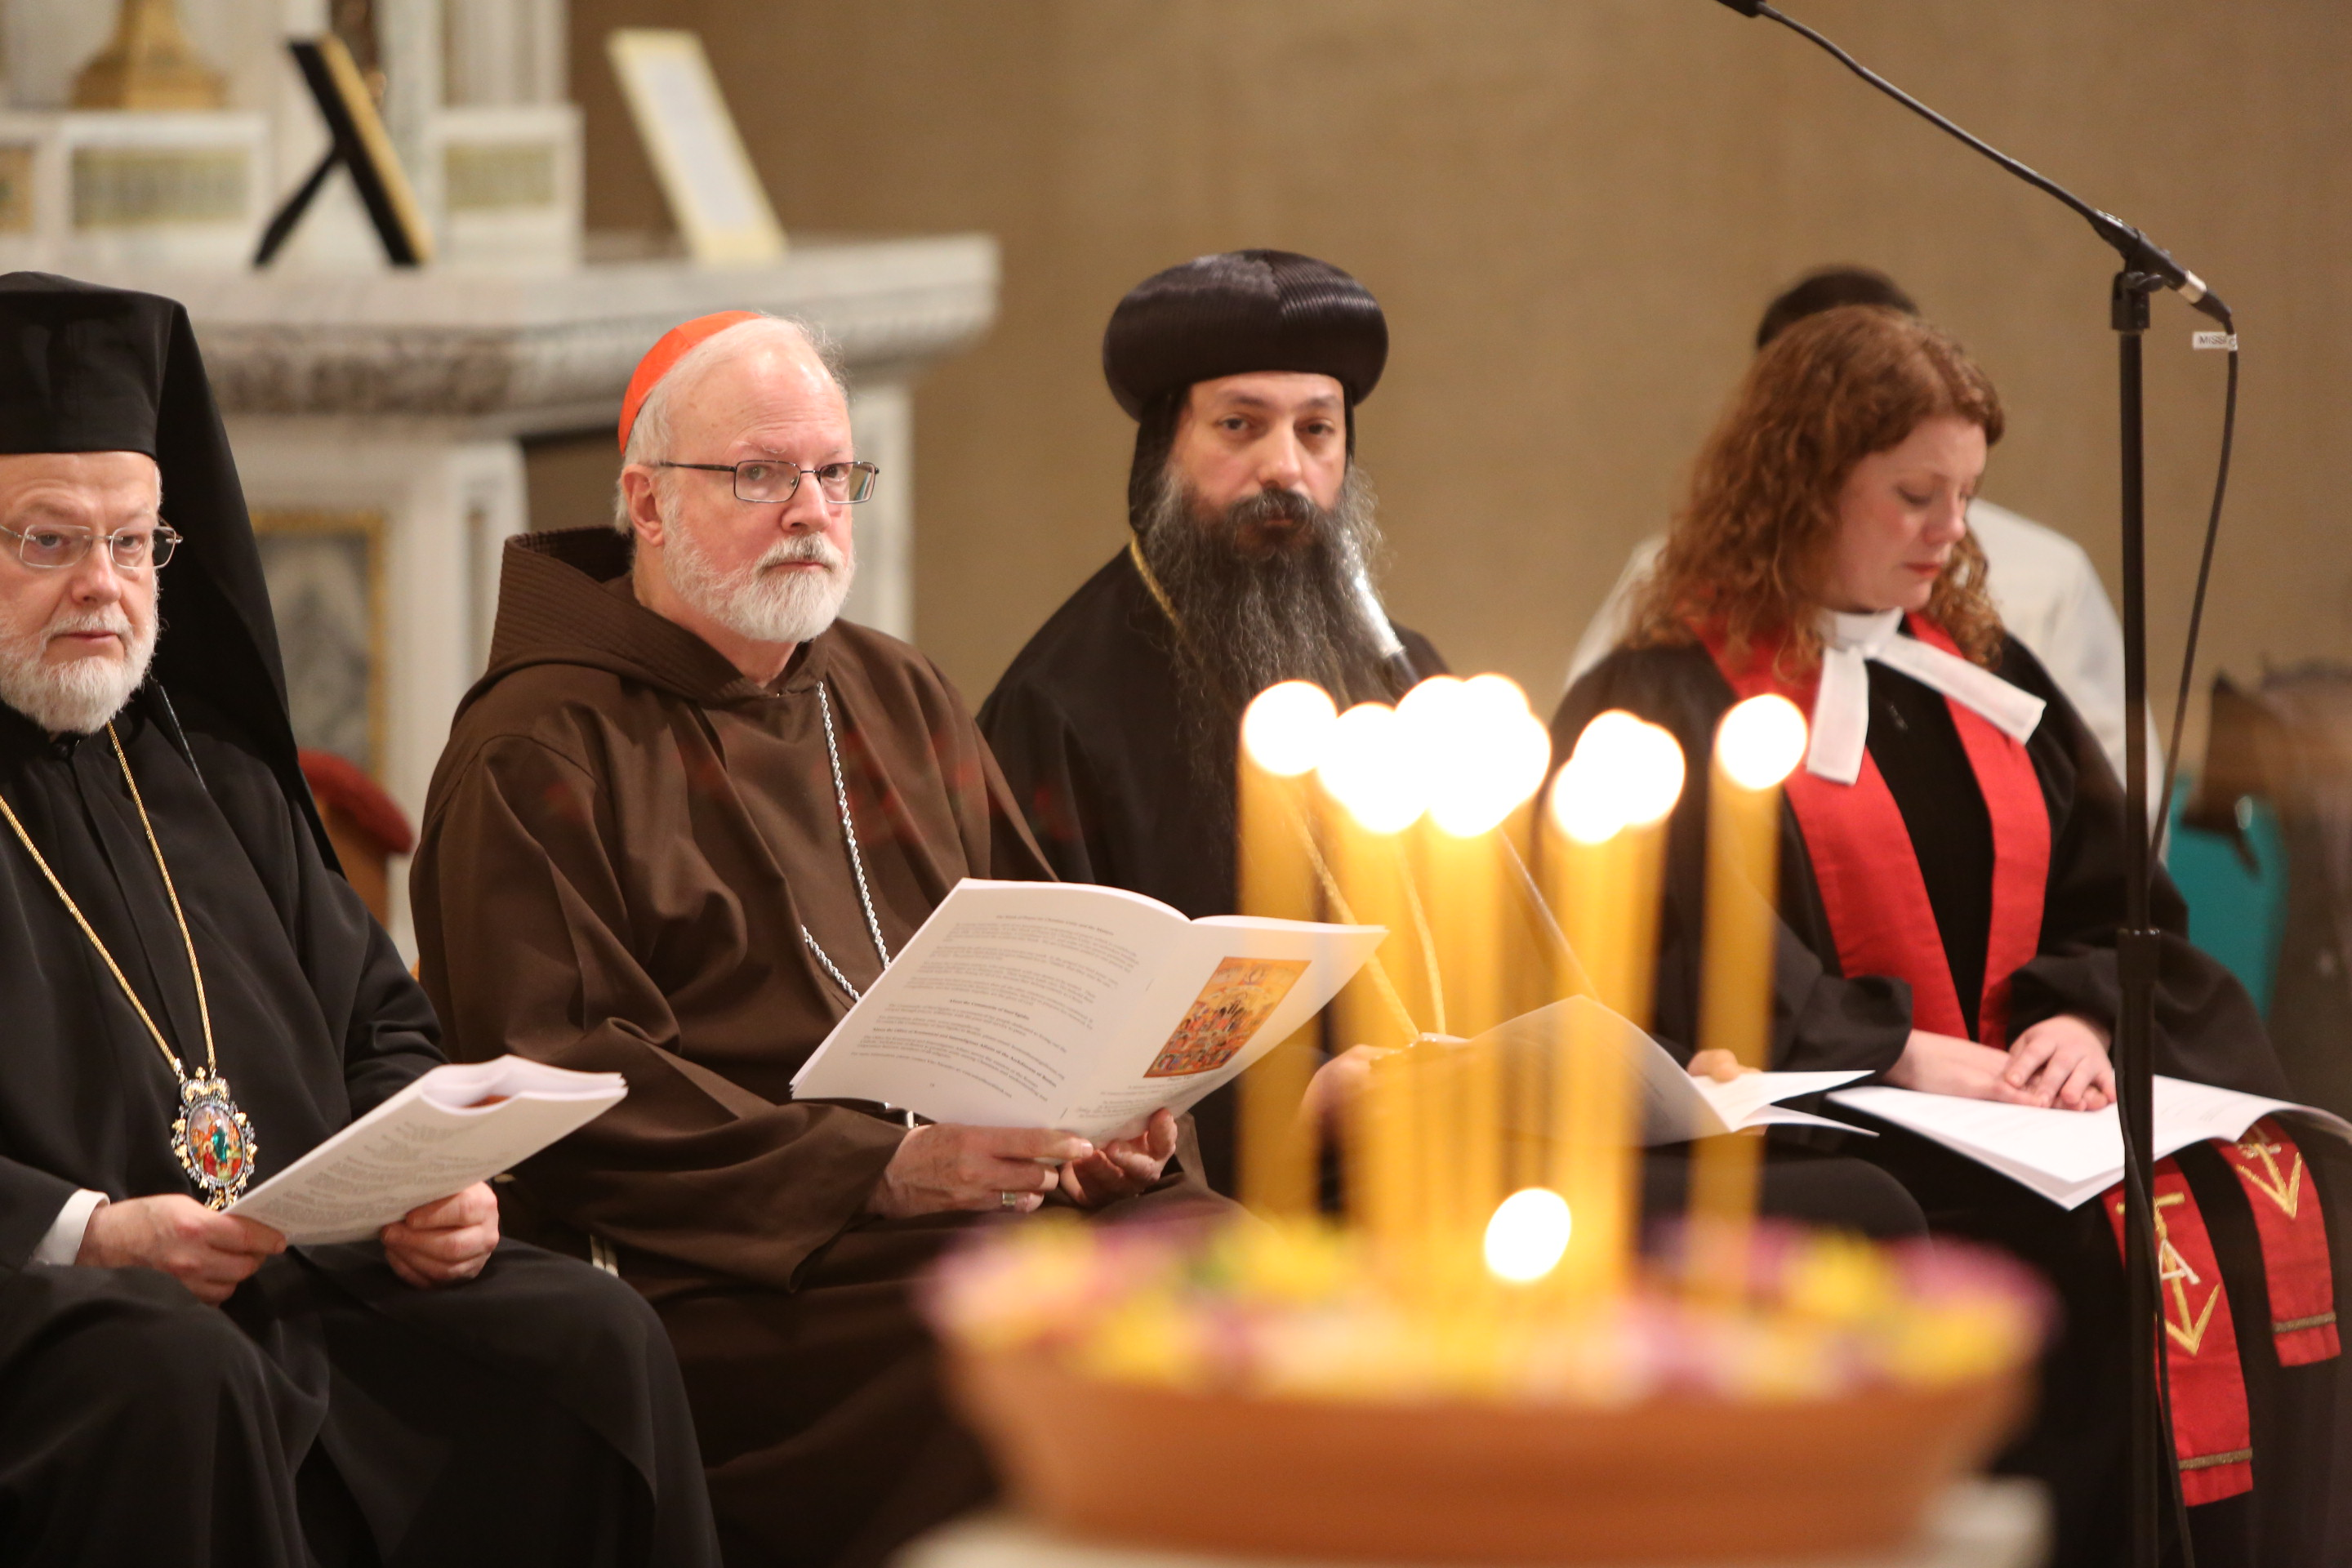 The Week of Prayer for Christian Unity: 4 Things Churches Can Do